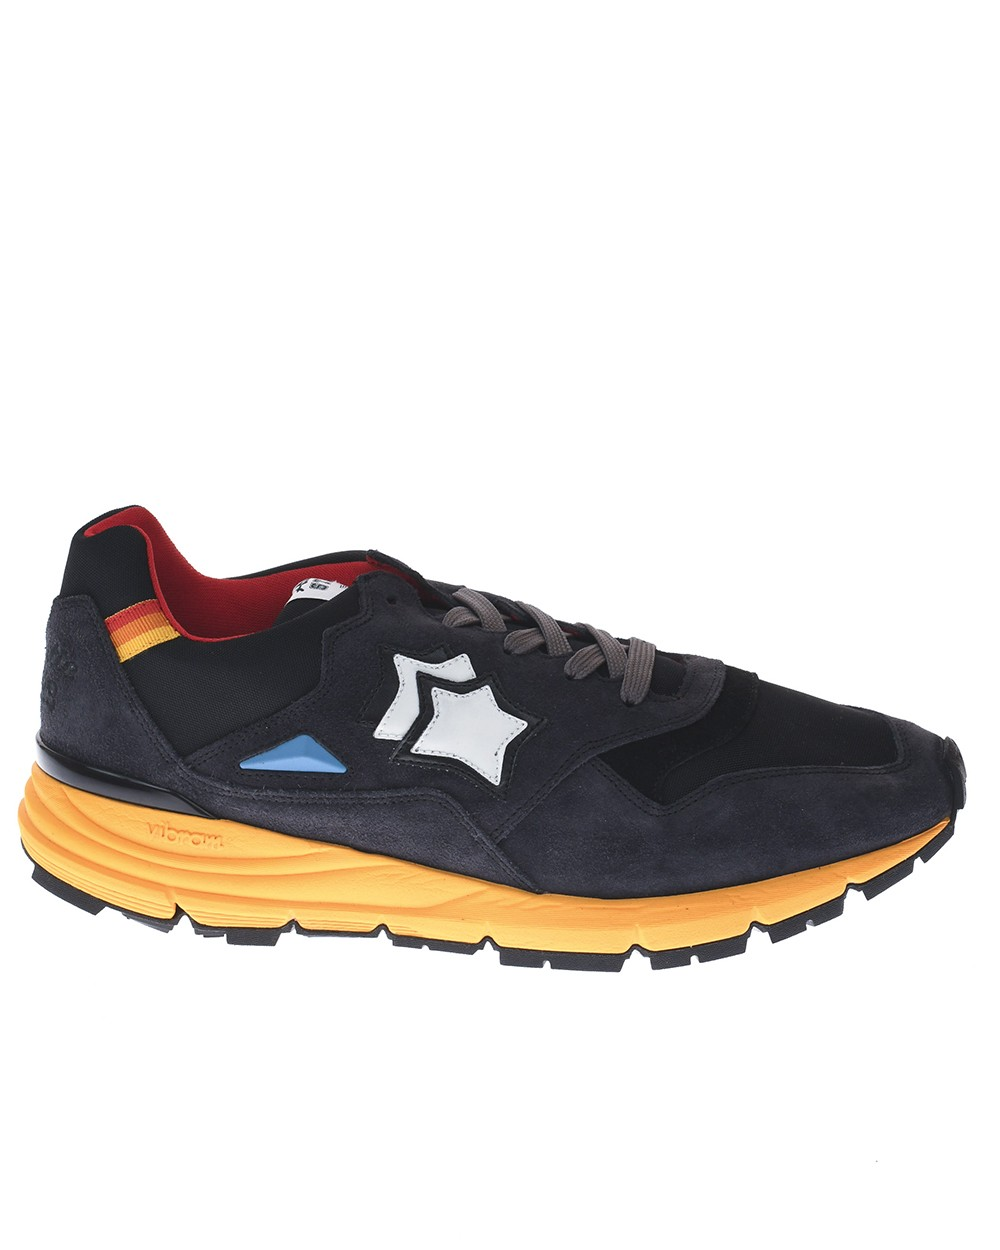 ATLANTIC STARS SCARPE POLARIS